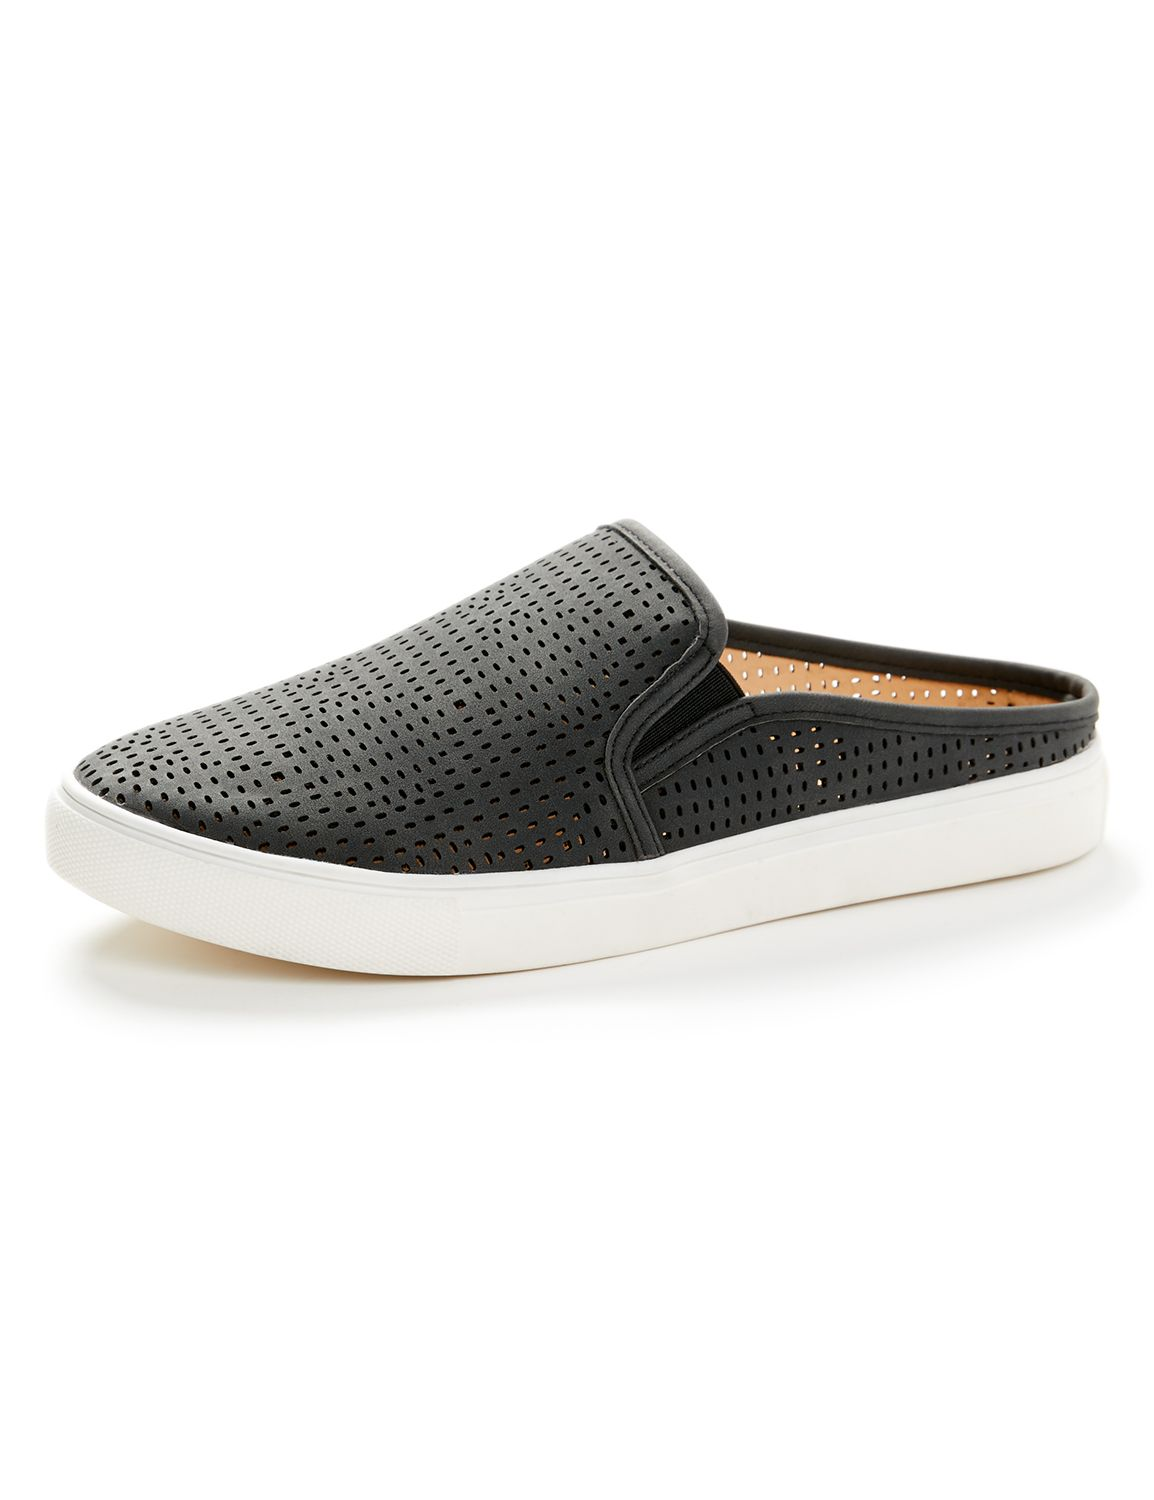 Good Soles Slip-On Sneaker Perf Slip On Sneaker M24813 MP-300097774